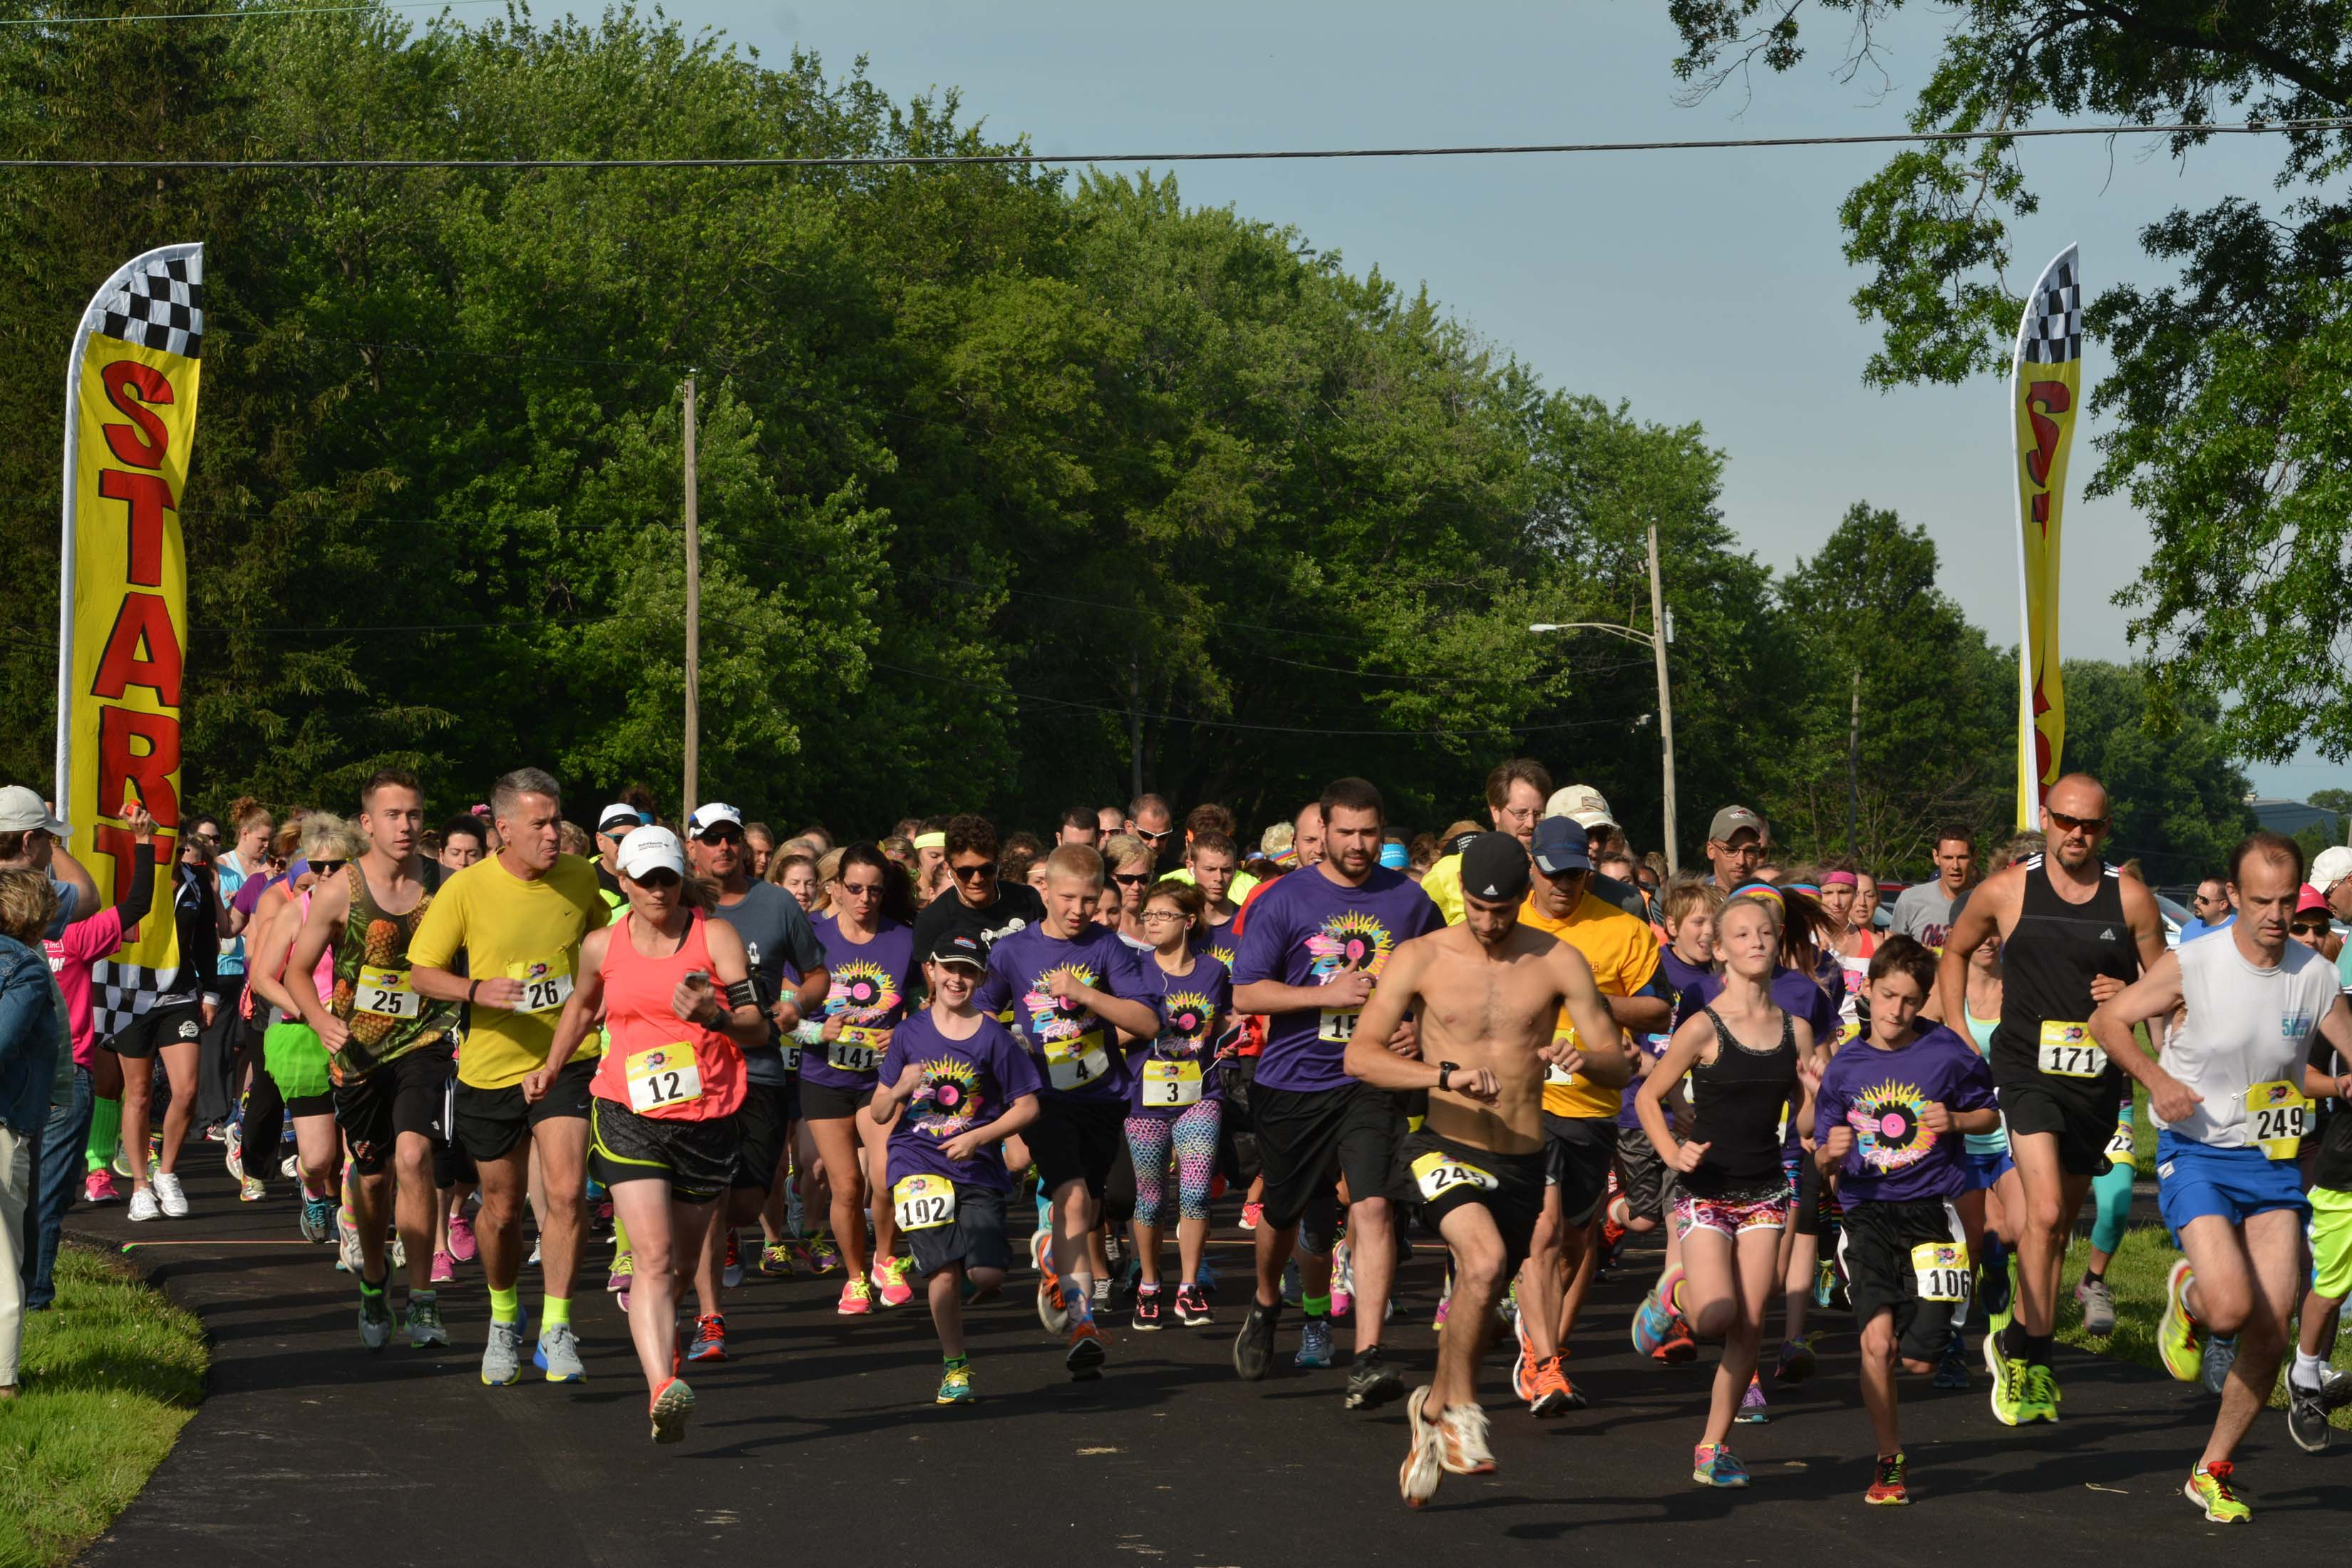 Be at the 2016 Footloose 5K June 25!